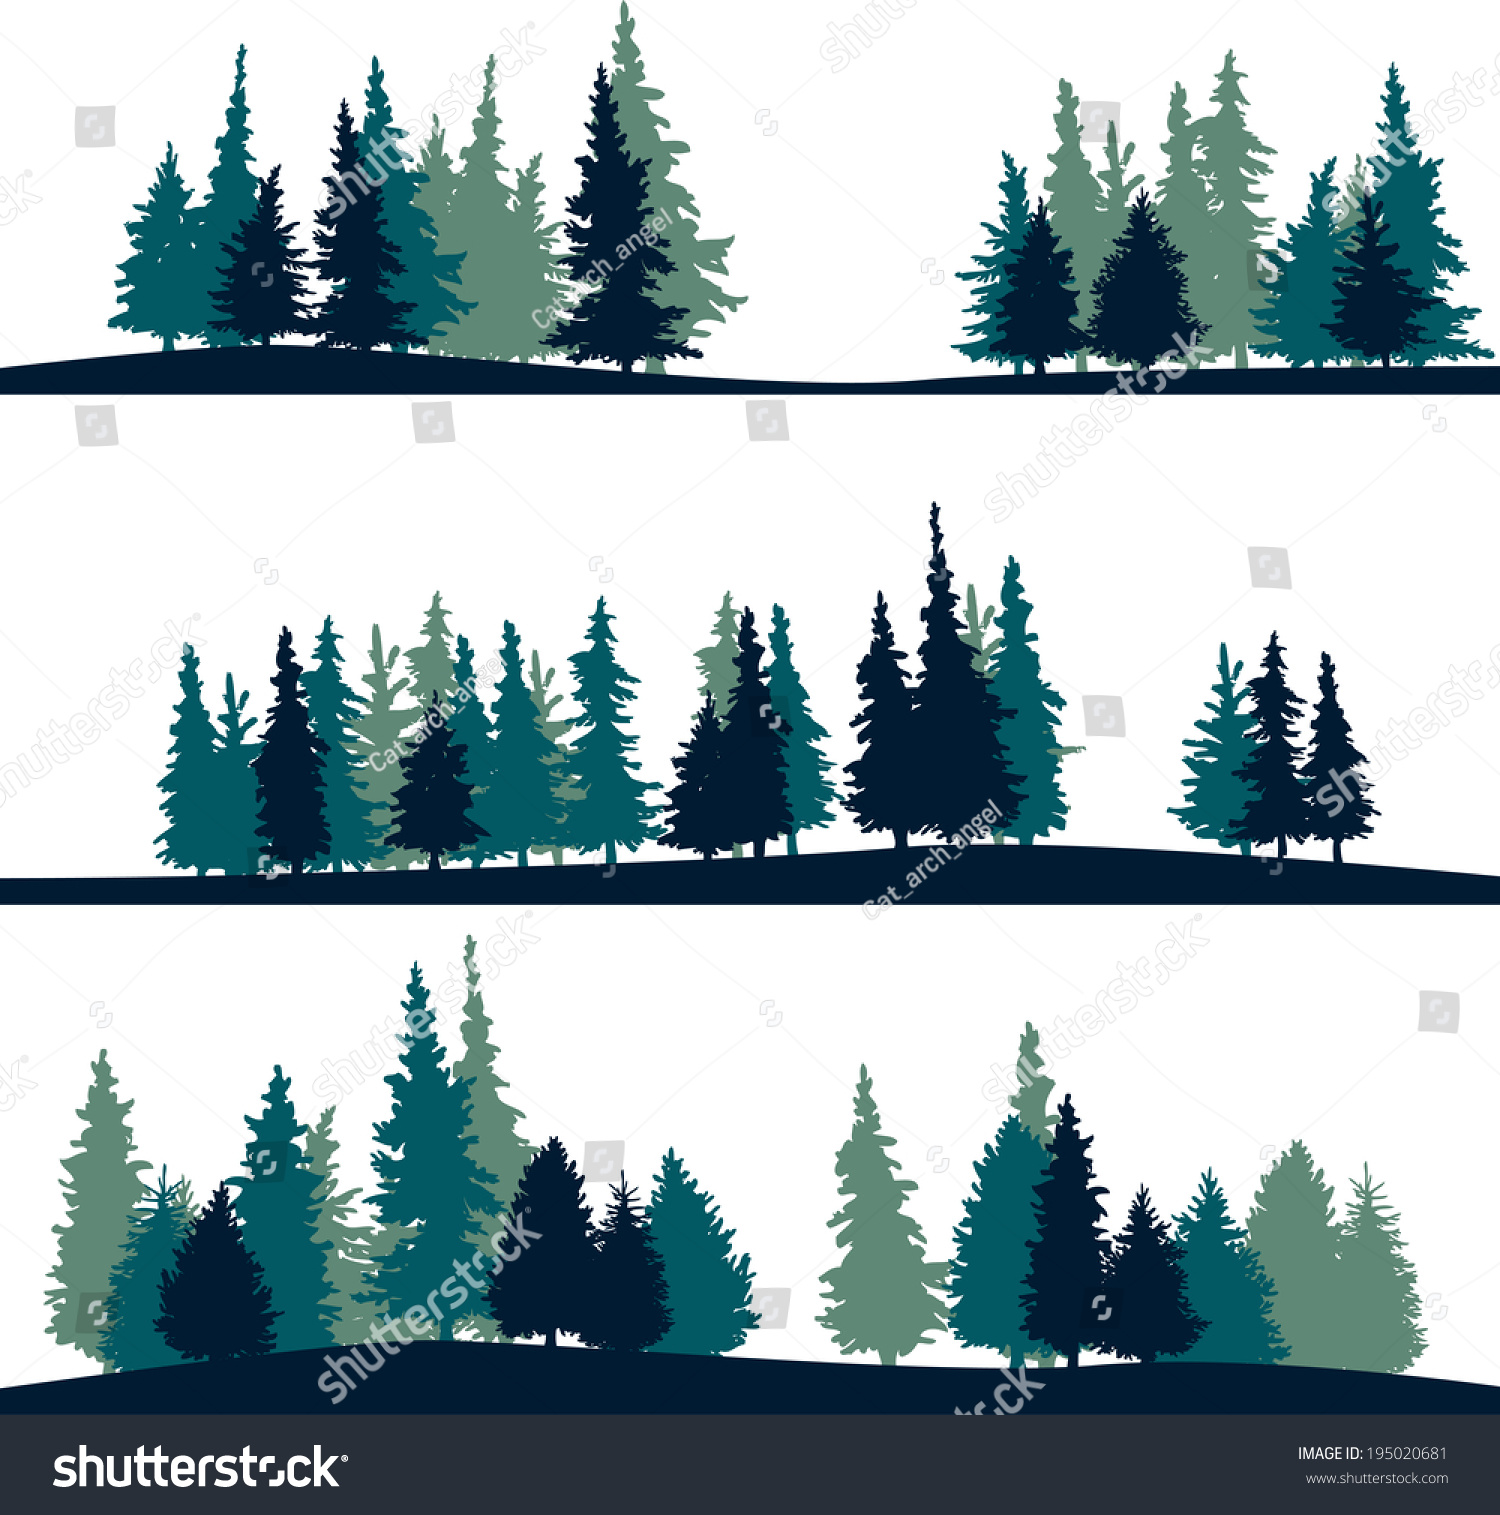 Landscape Trees Vector : Landscape firtrees vector stock shutterstock